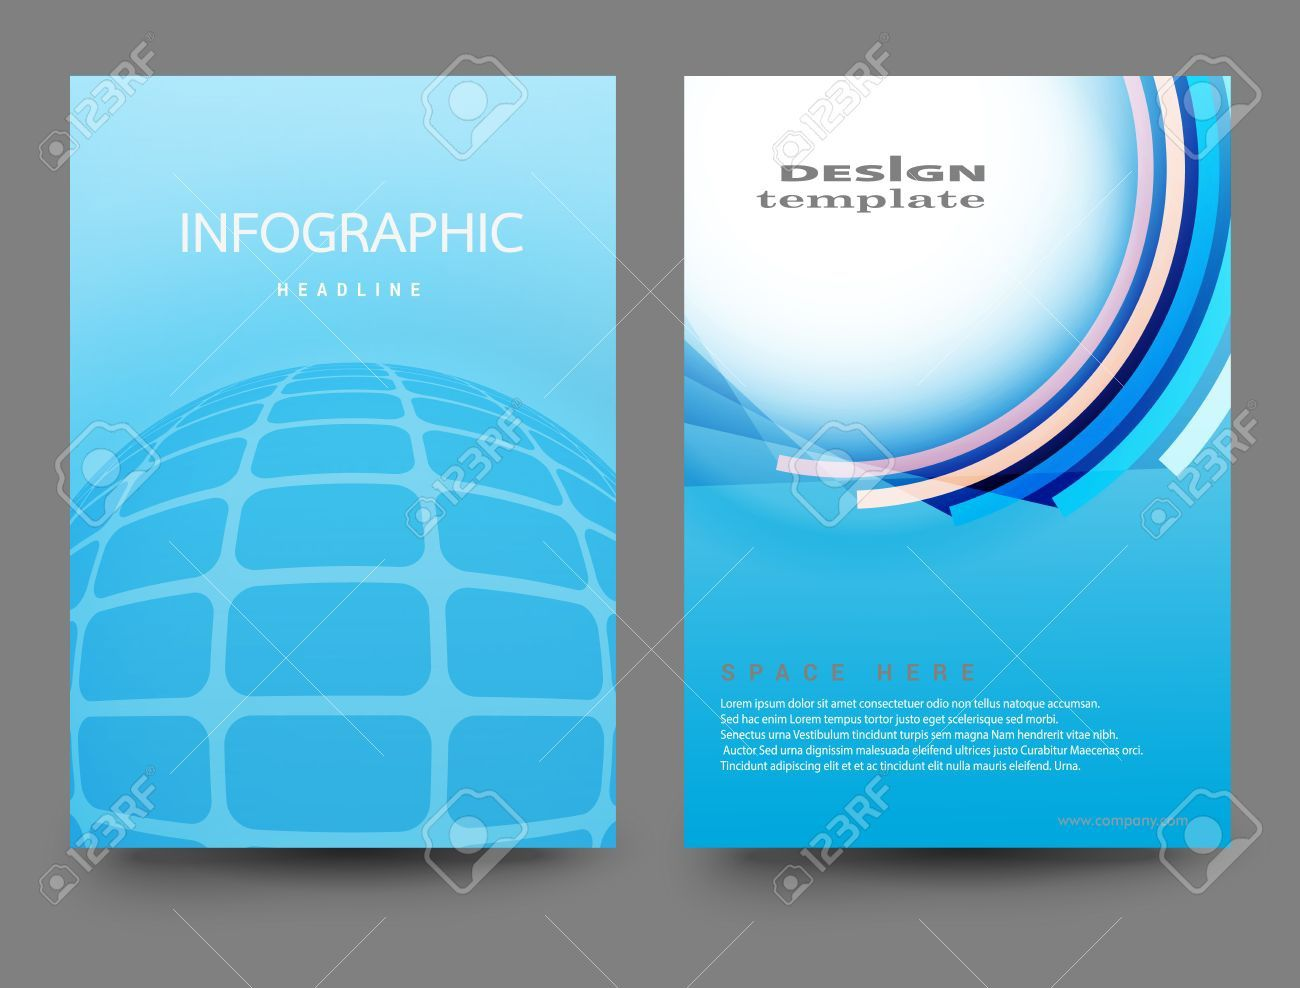 003 Unique Book Front Page Design Template Free Download Photo  Cover PsdFull